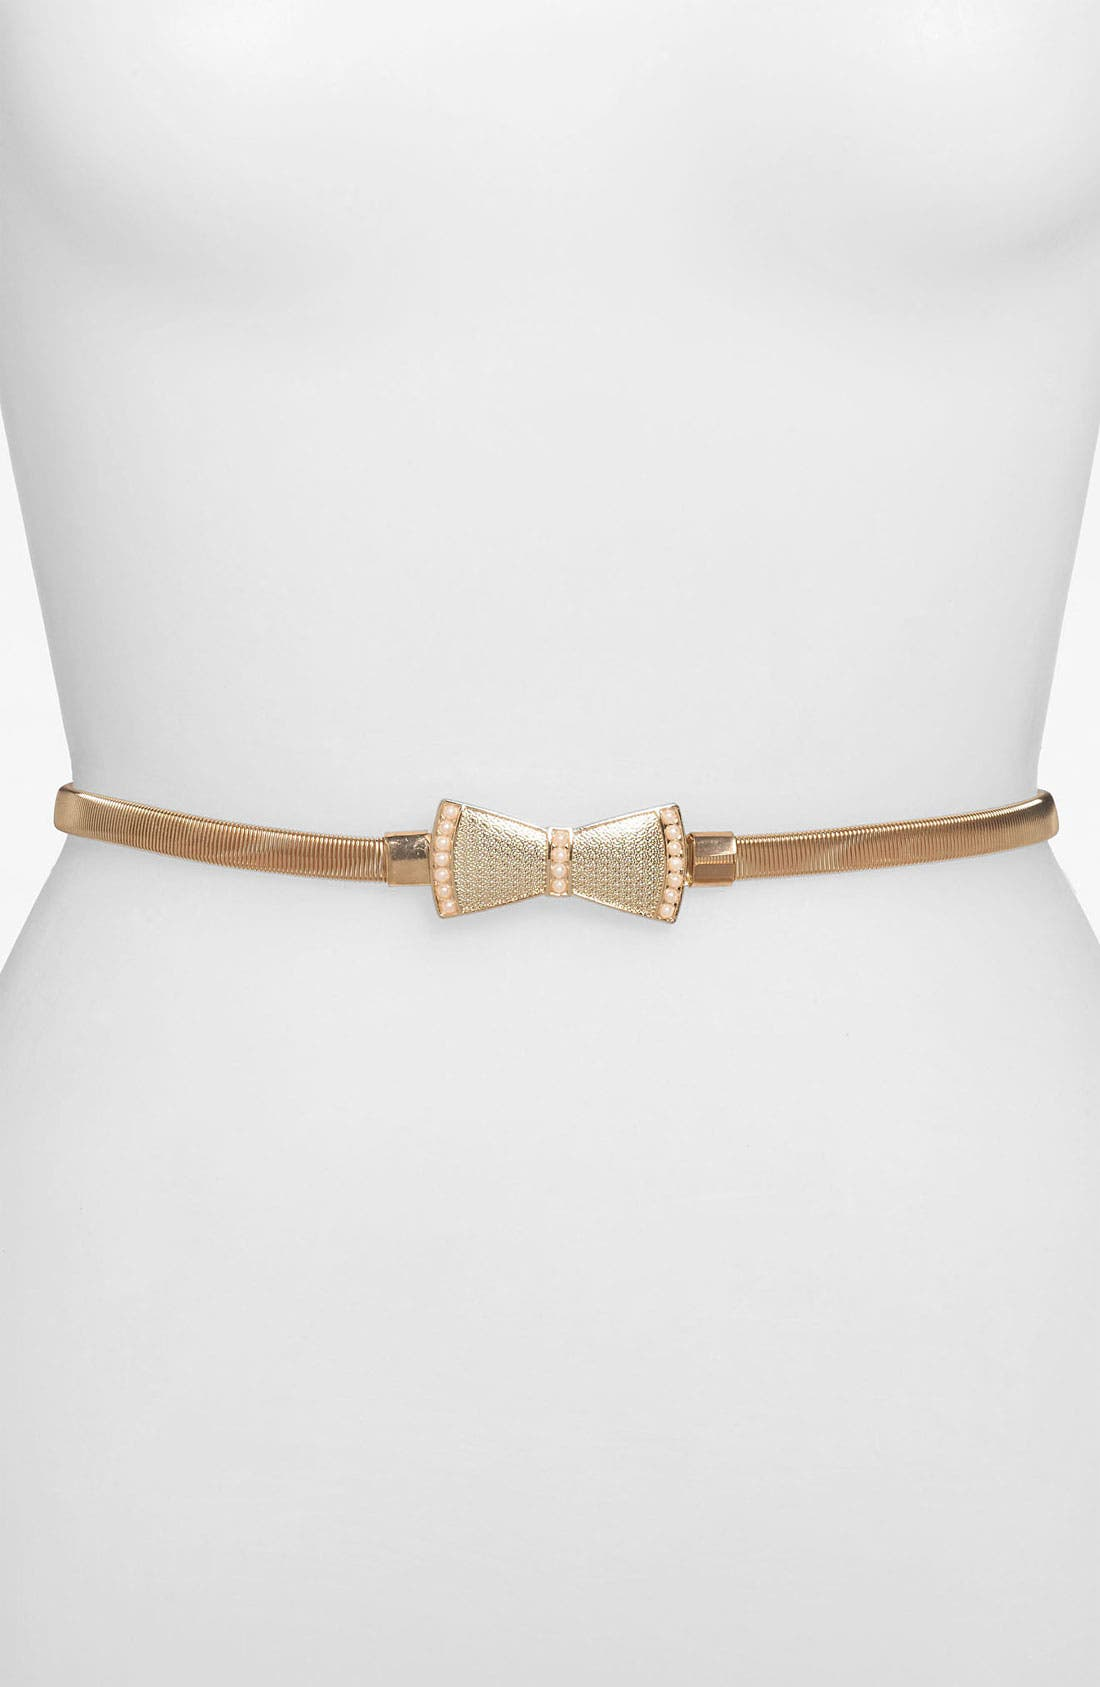 Main Image - Lulu Pearl Bow Stretch Belt